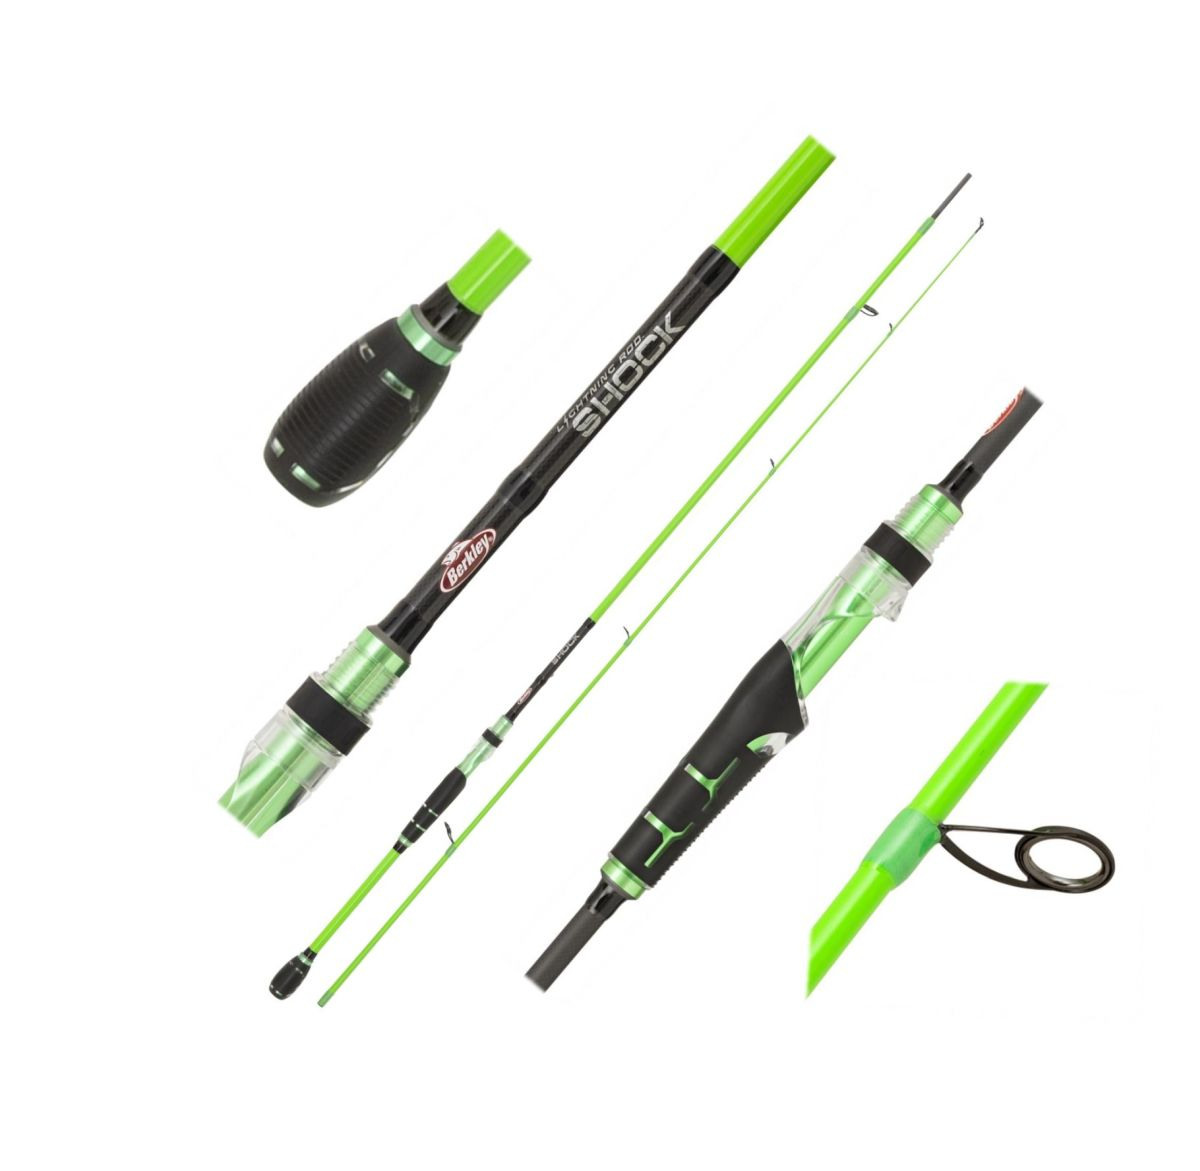 Přívlačový prut Berkley Lighting Shock Green Spin M 2,10m 10-35g